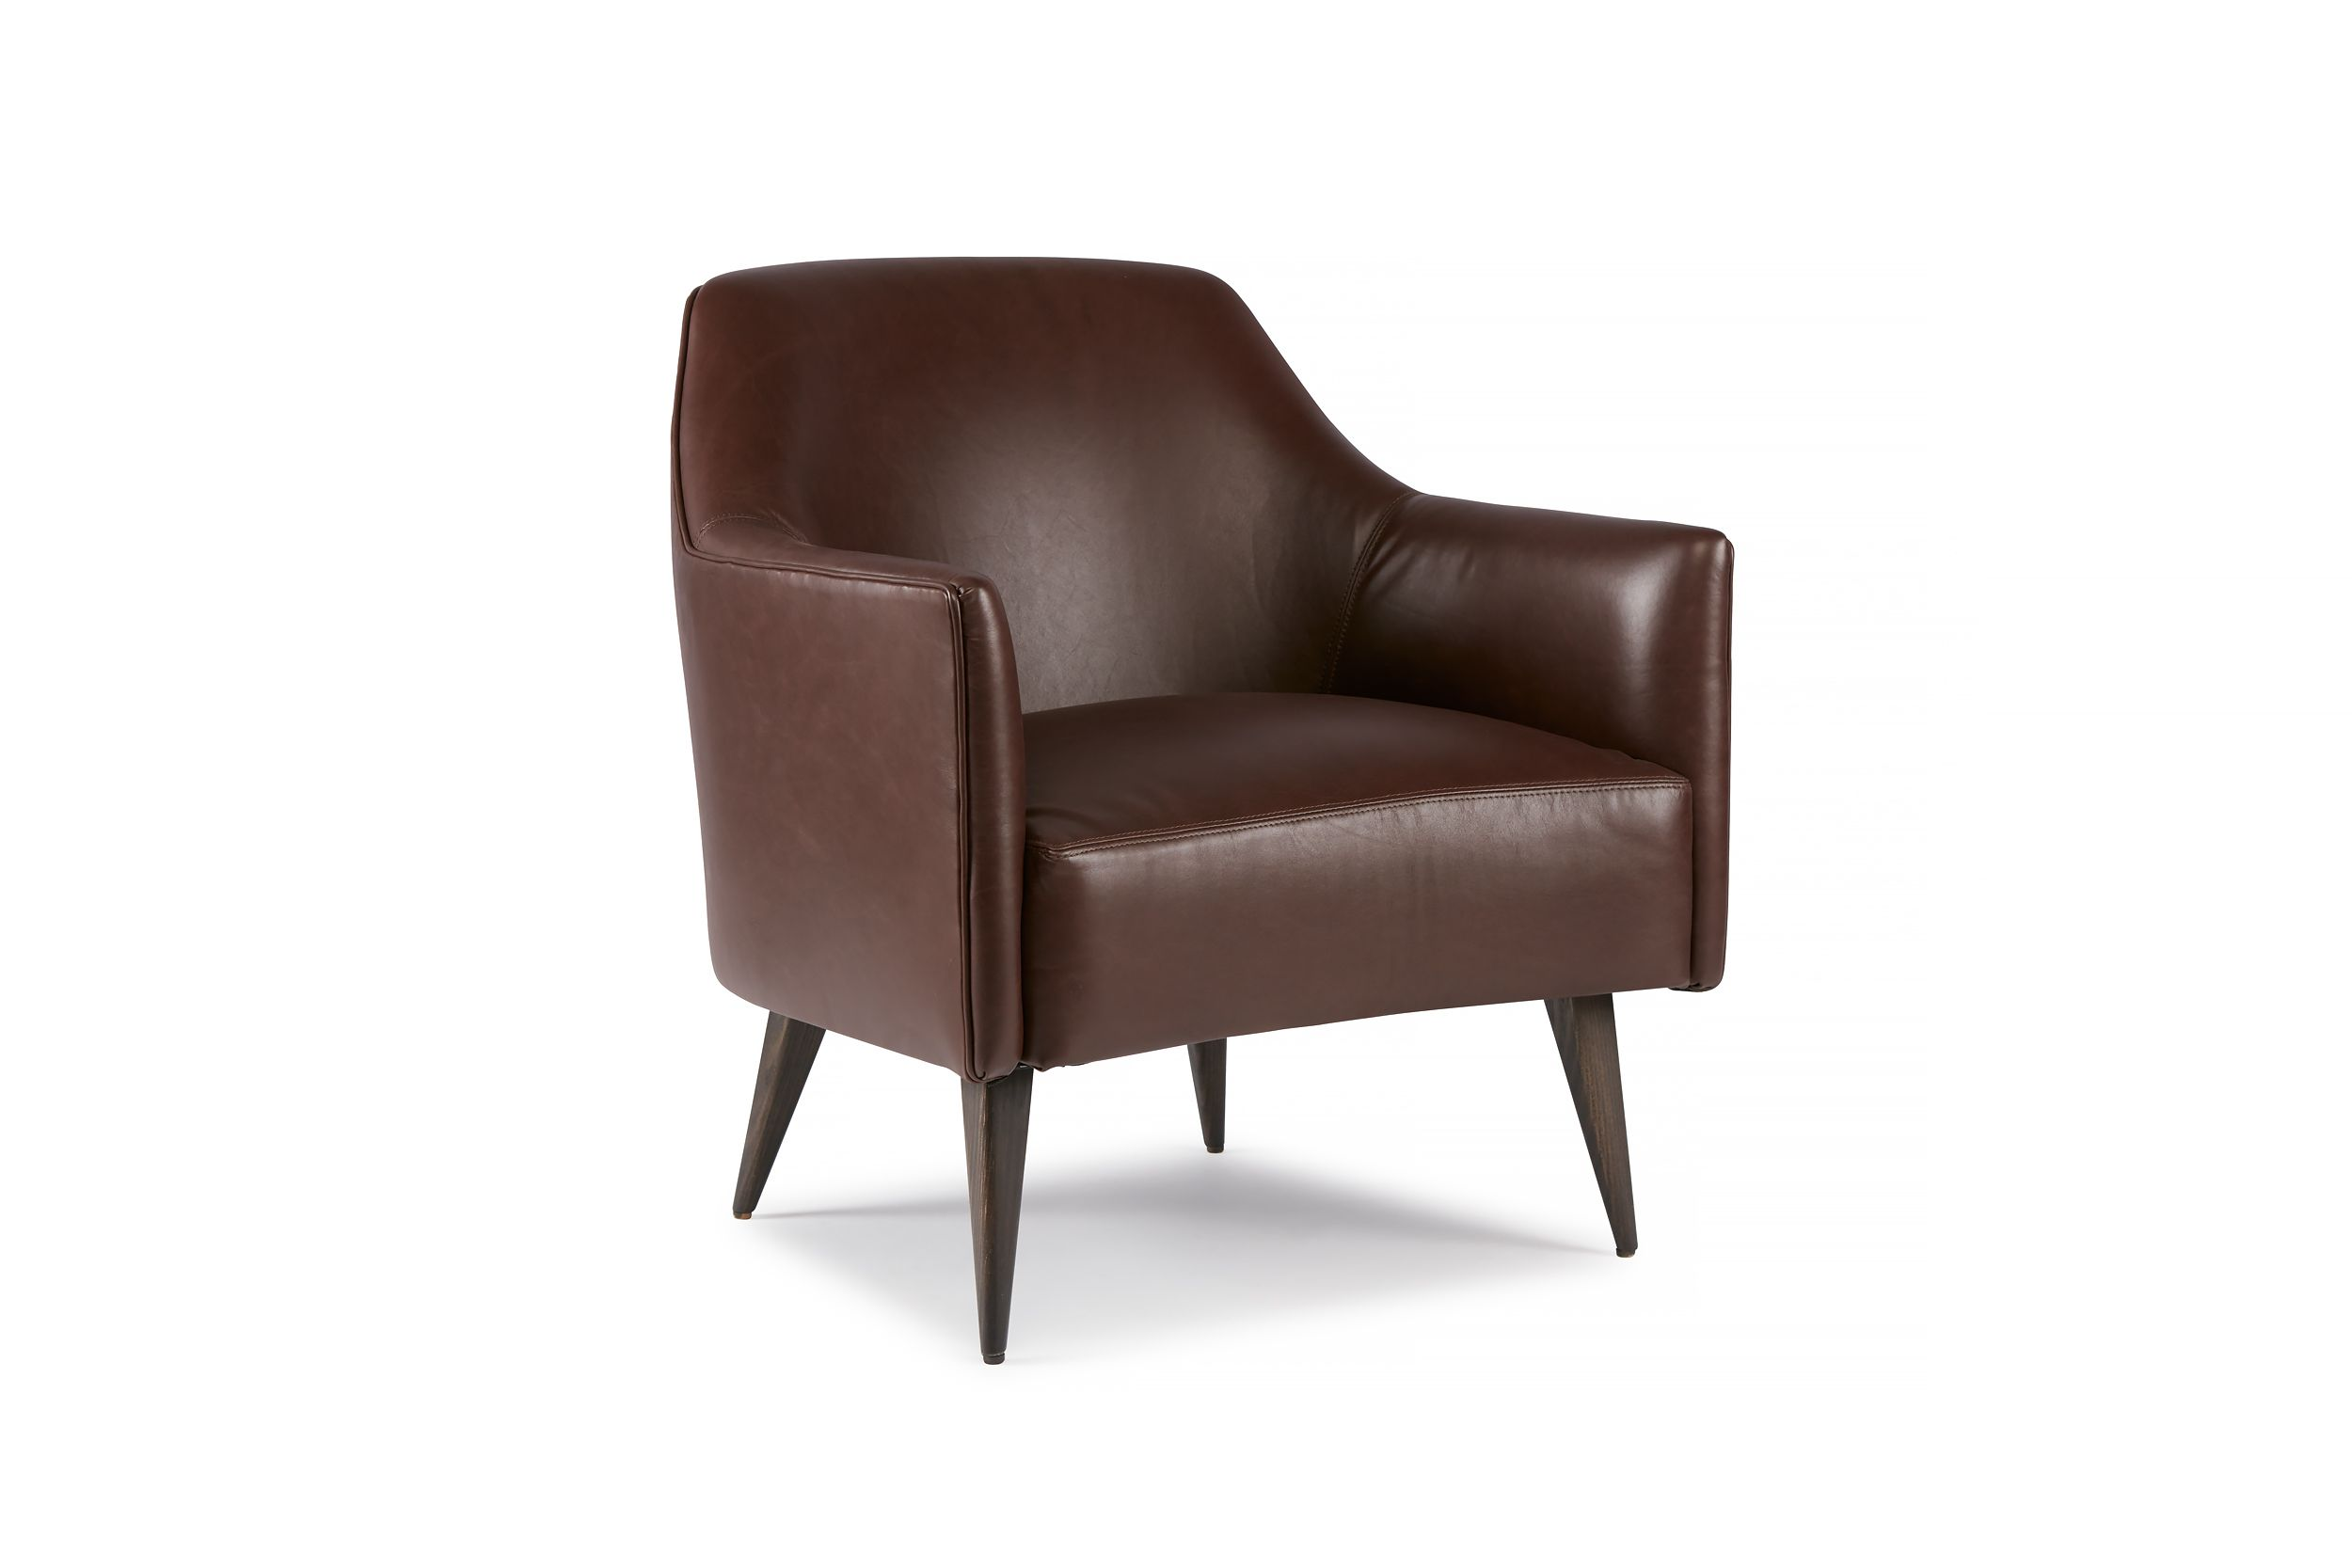 Charmant The Stanley Chair Is A Compact Design, Taken From Outr Stanley Sofa. Ideal  For